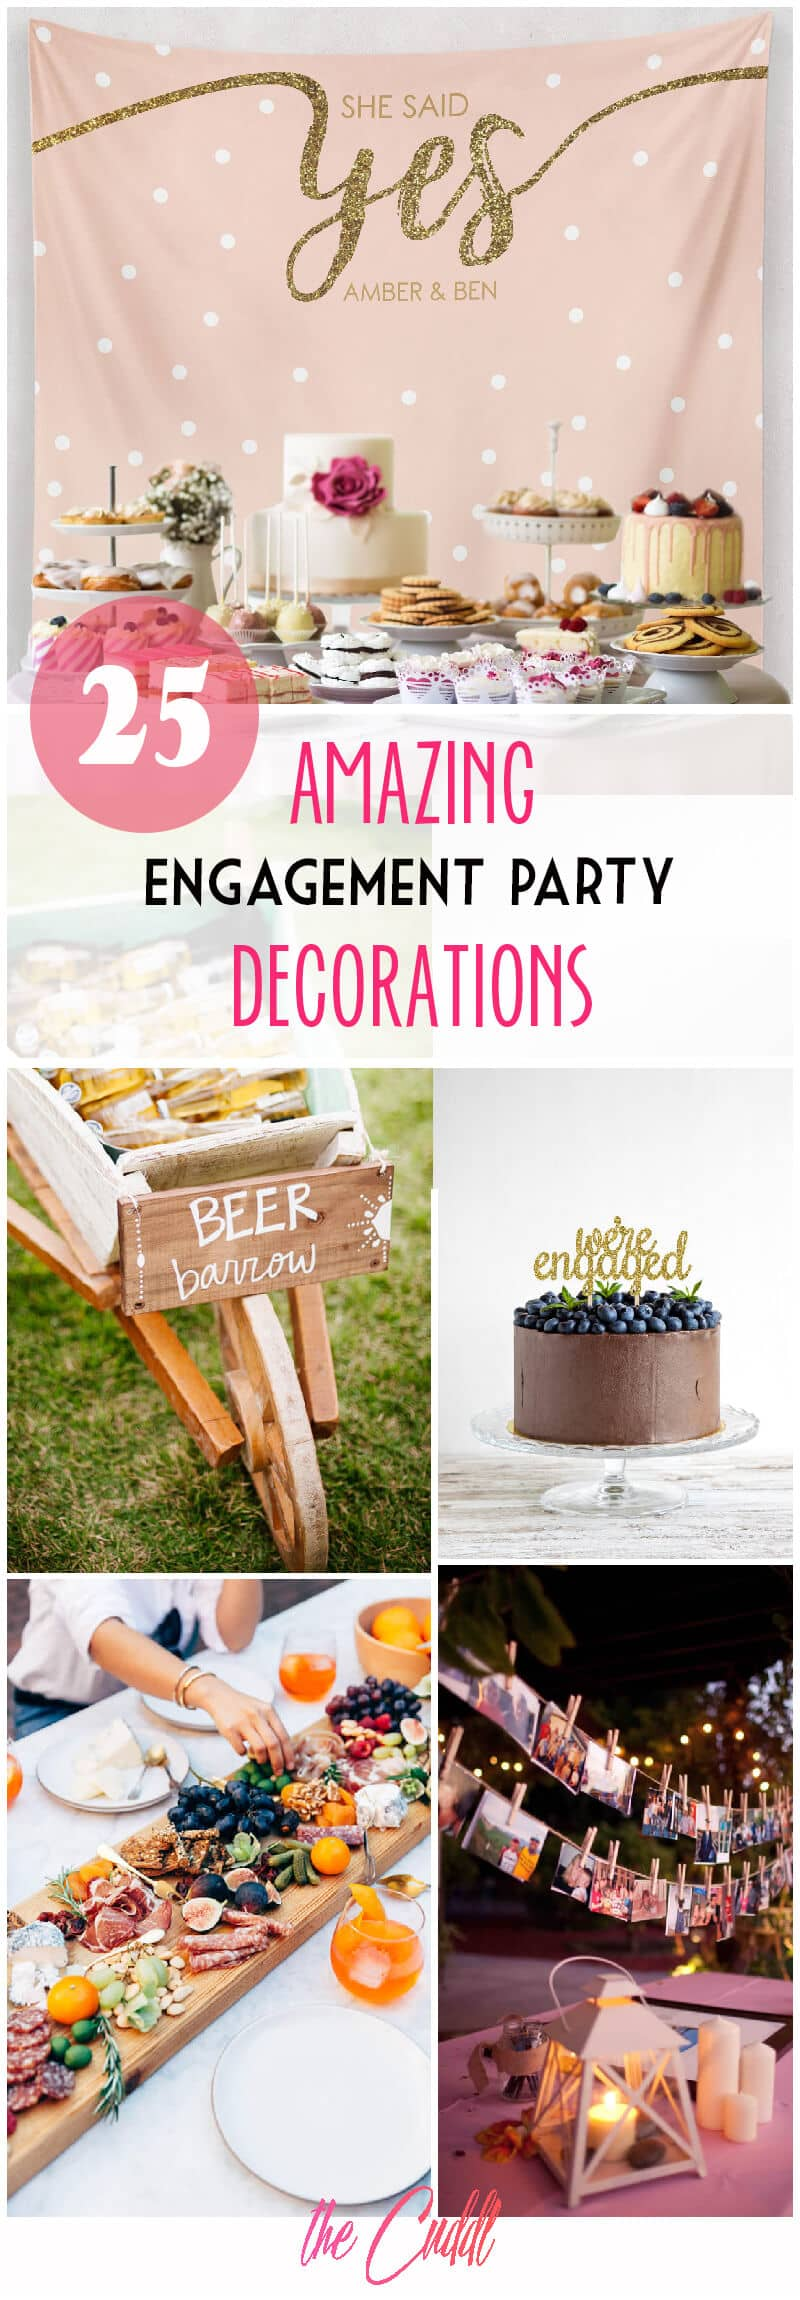 25 Amazing Diy Engagement Party Decoration Ideas For 2020